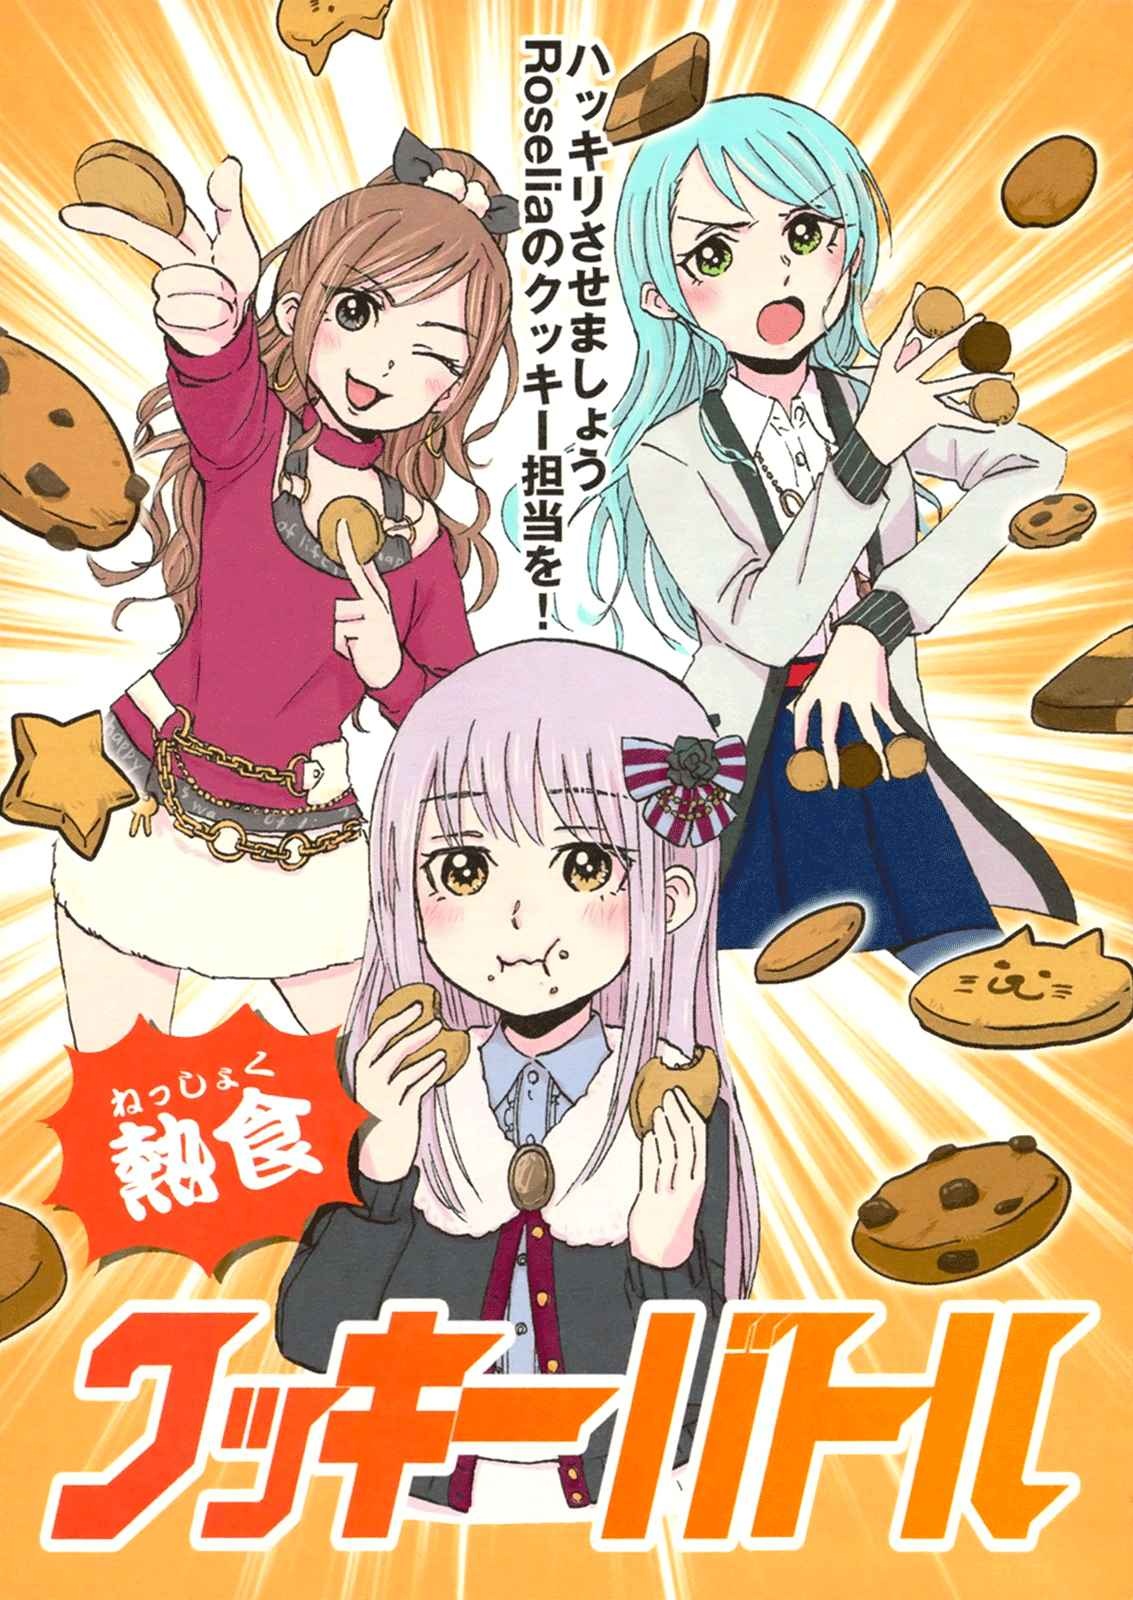 BanG Dream! - PASSION-ATE COOKIE BATTLE (Doujinshi) BanG Dream! PASSION ATE COOKIE BATTLE (Doujinshi) Oneshot